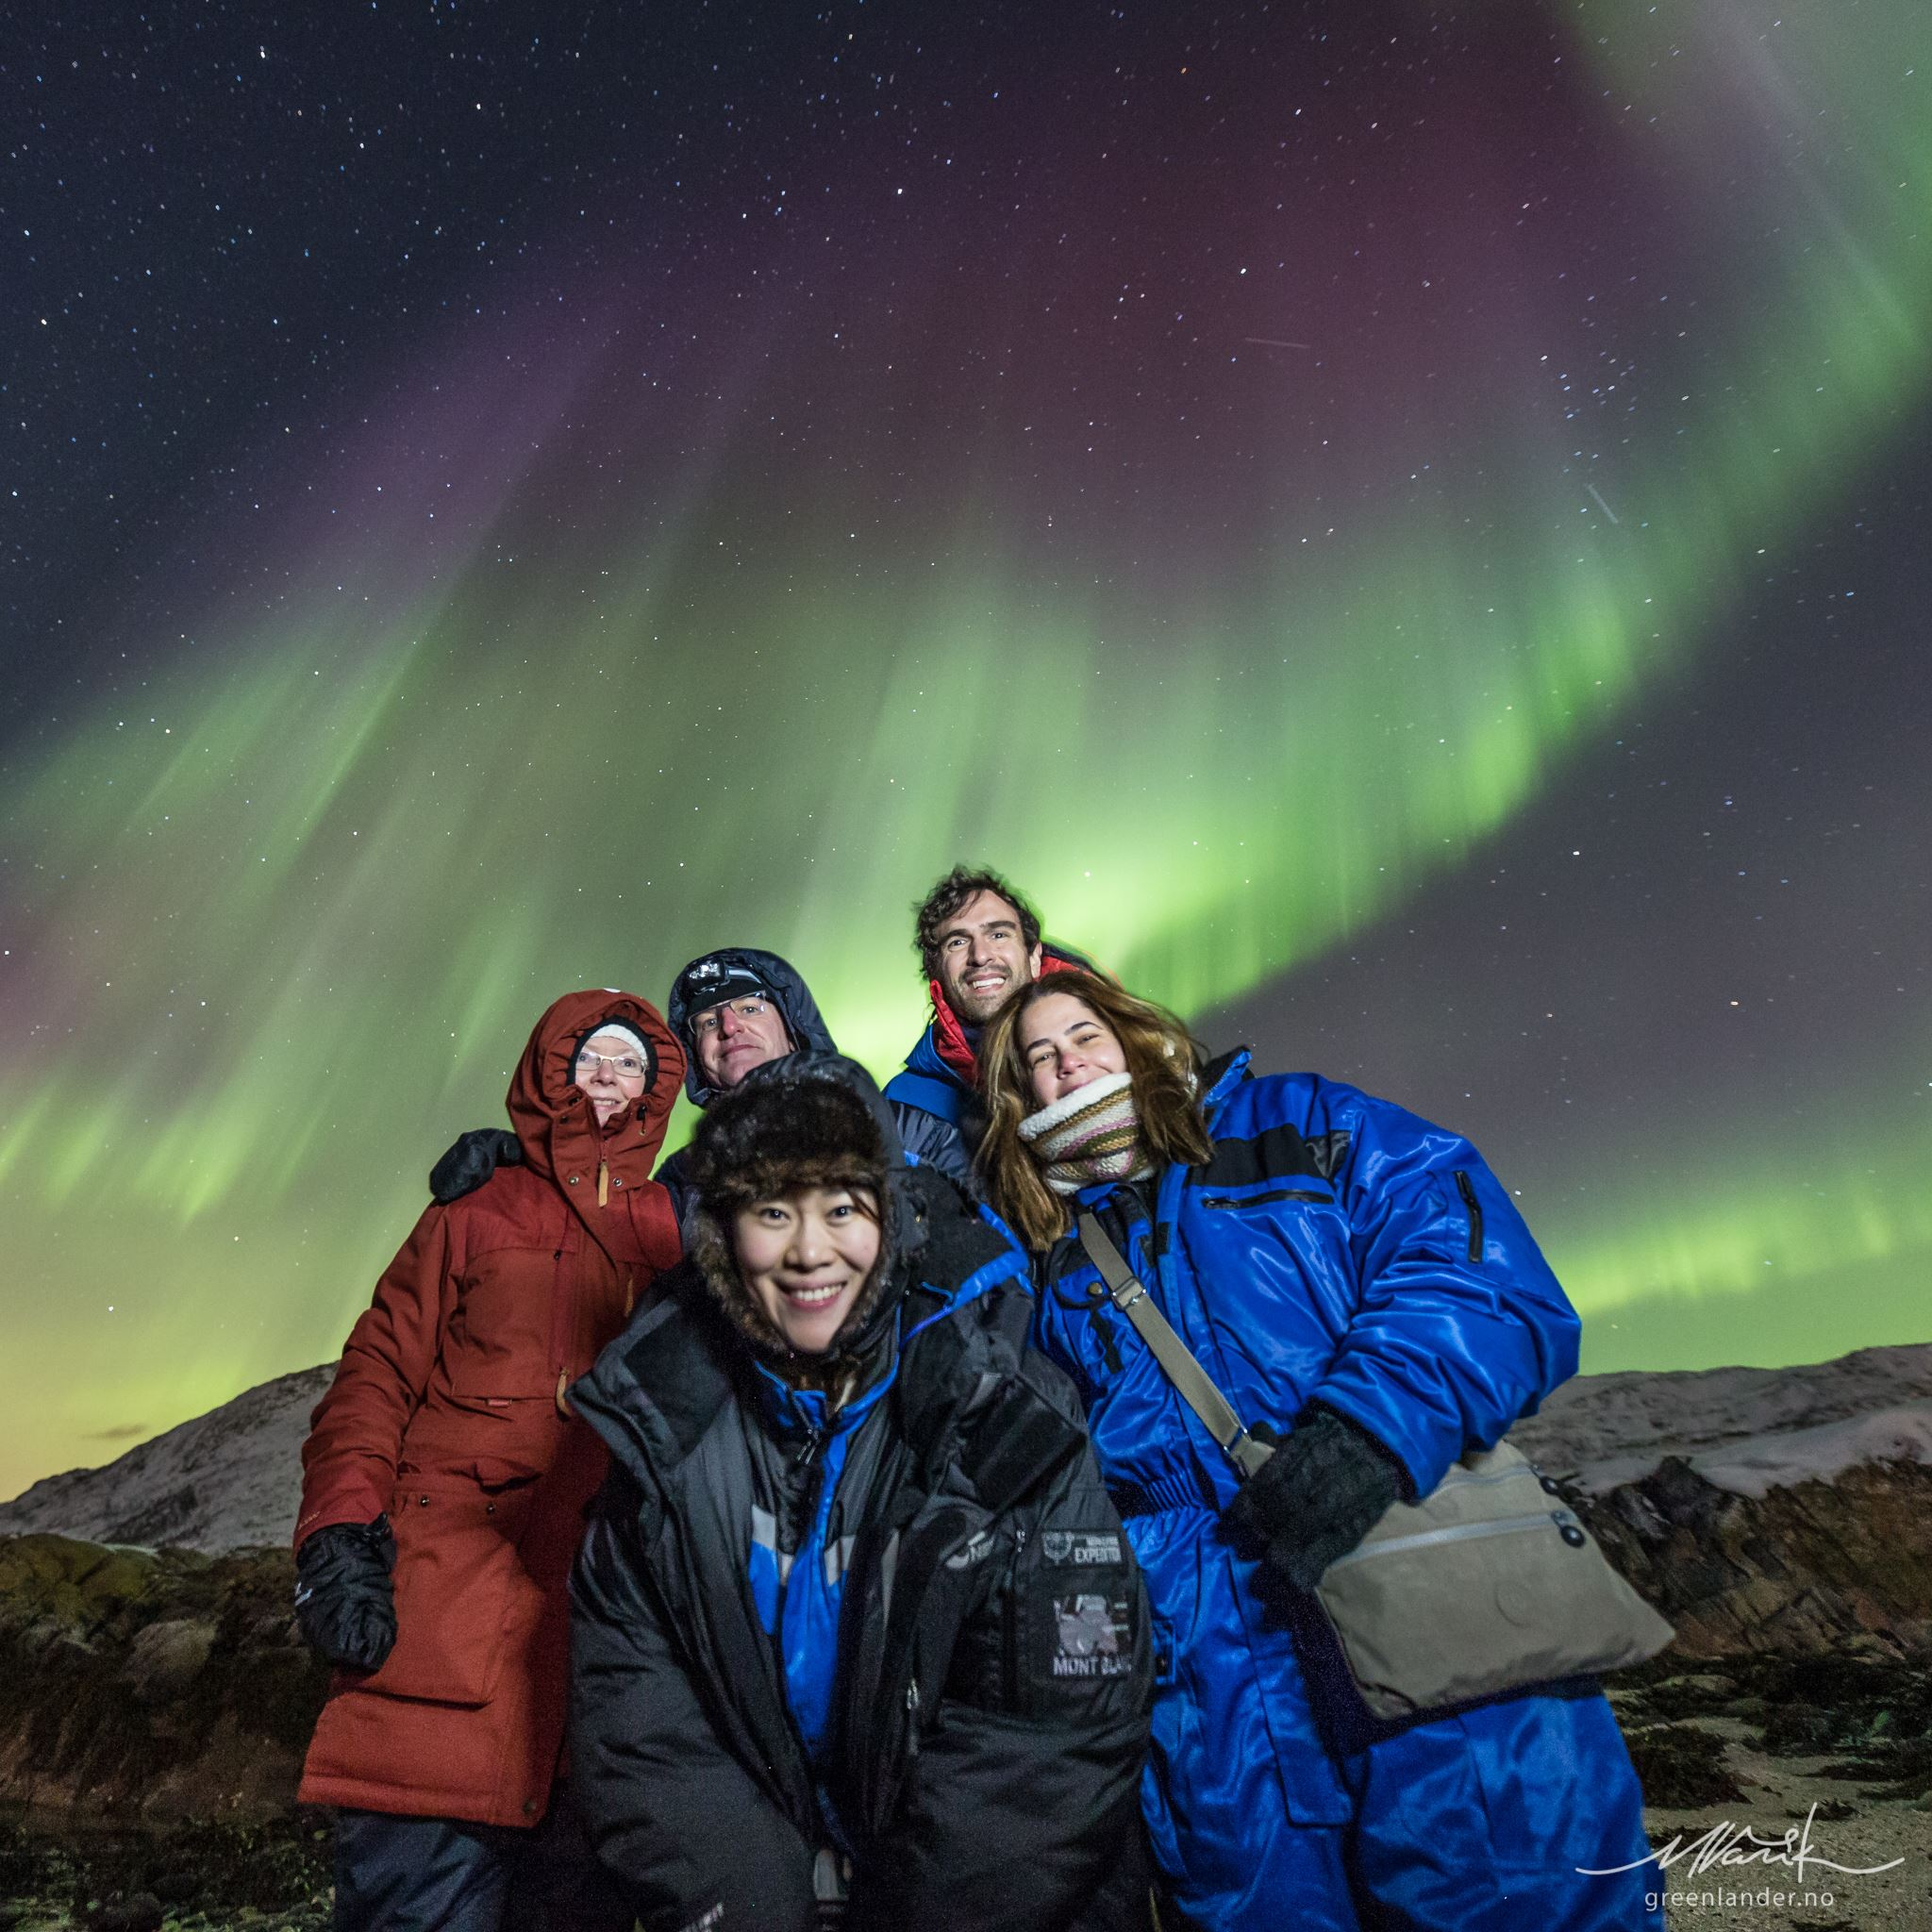 Northern Lights Expedition with Arctic 4WD Truck max. 6 people - Greenlander